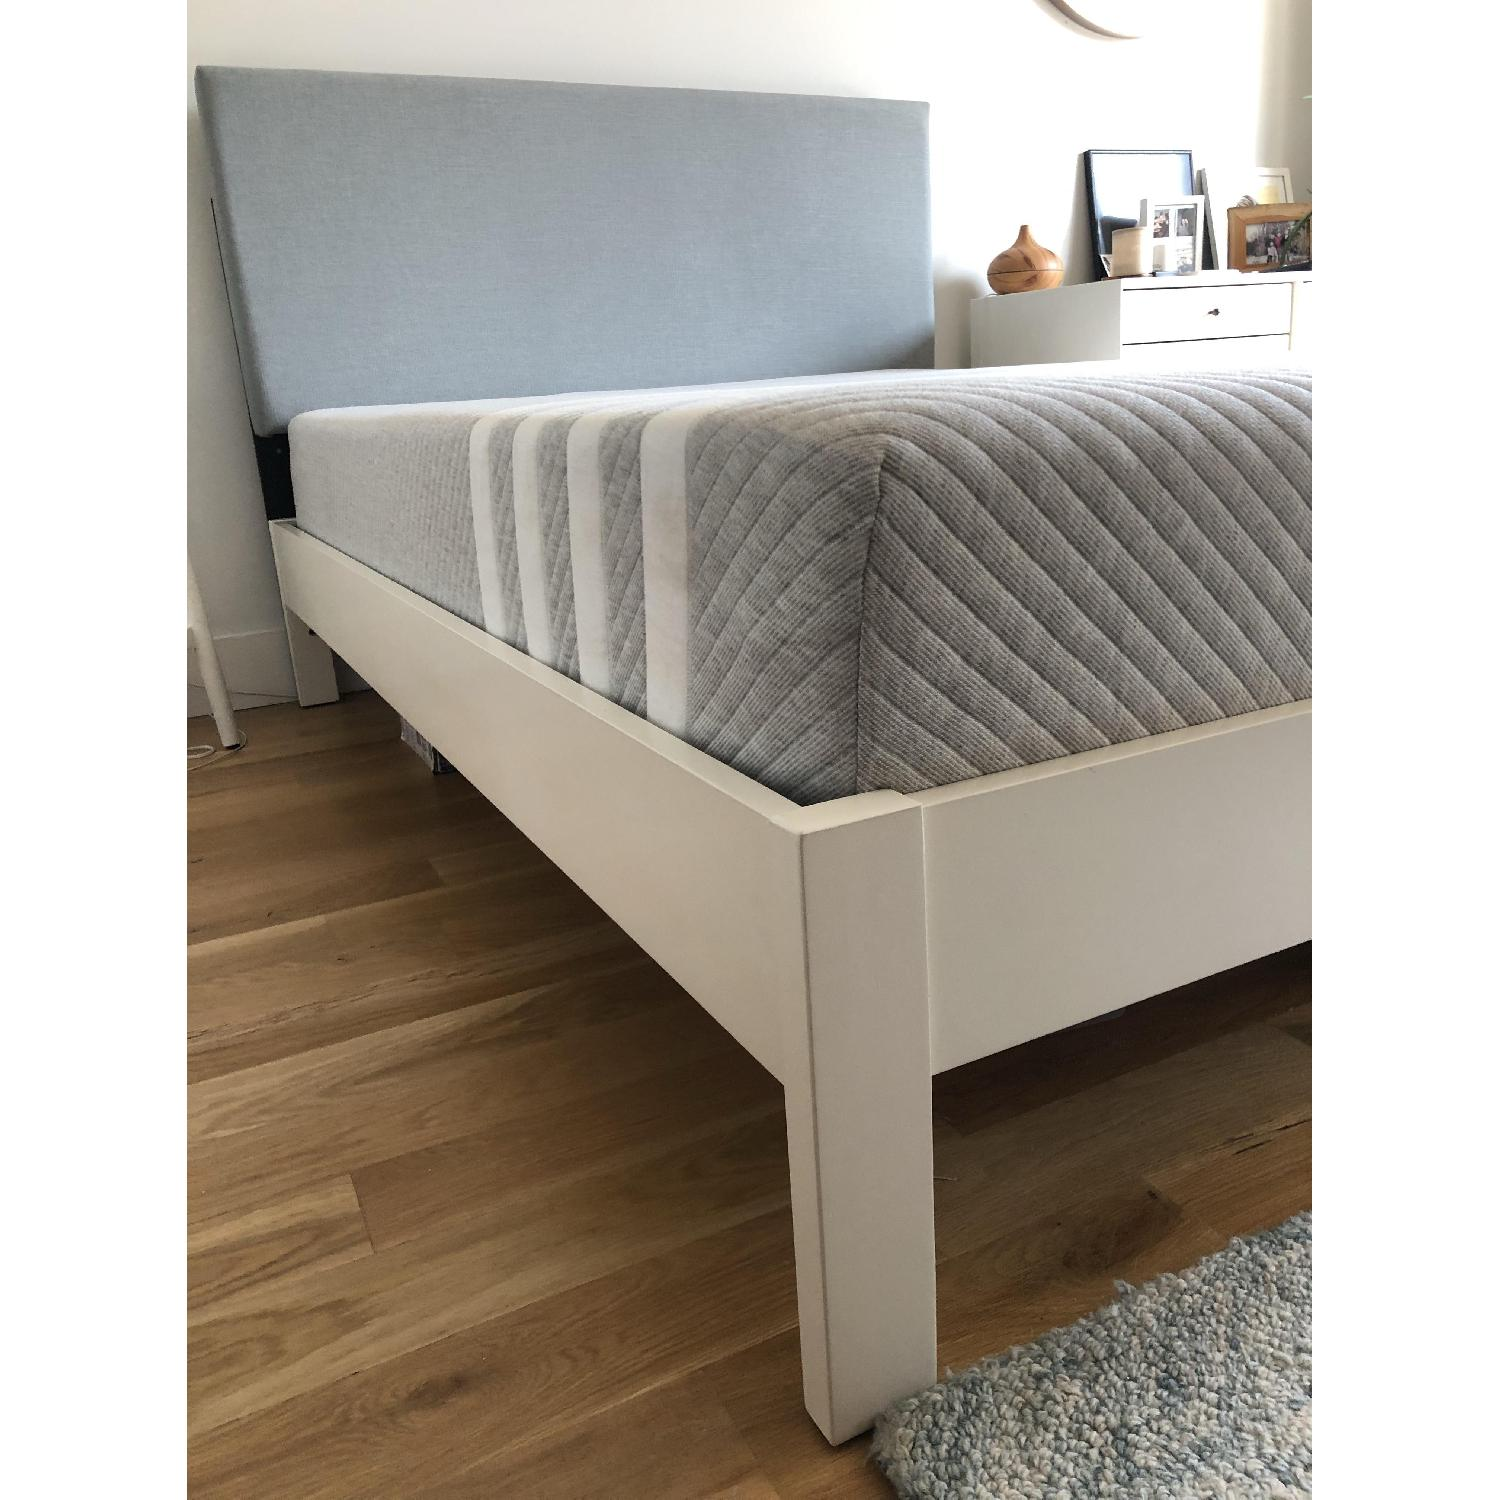 West Elm Simple Full Bed Frame in White Lacquer w/ Headboard - image-3